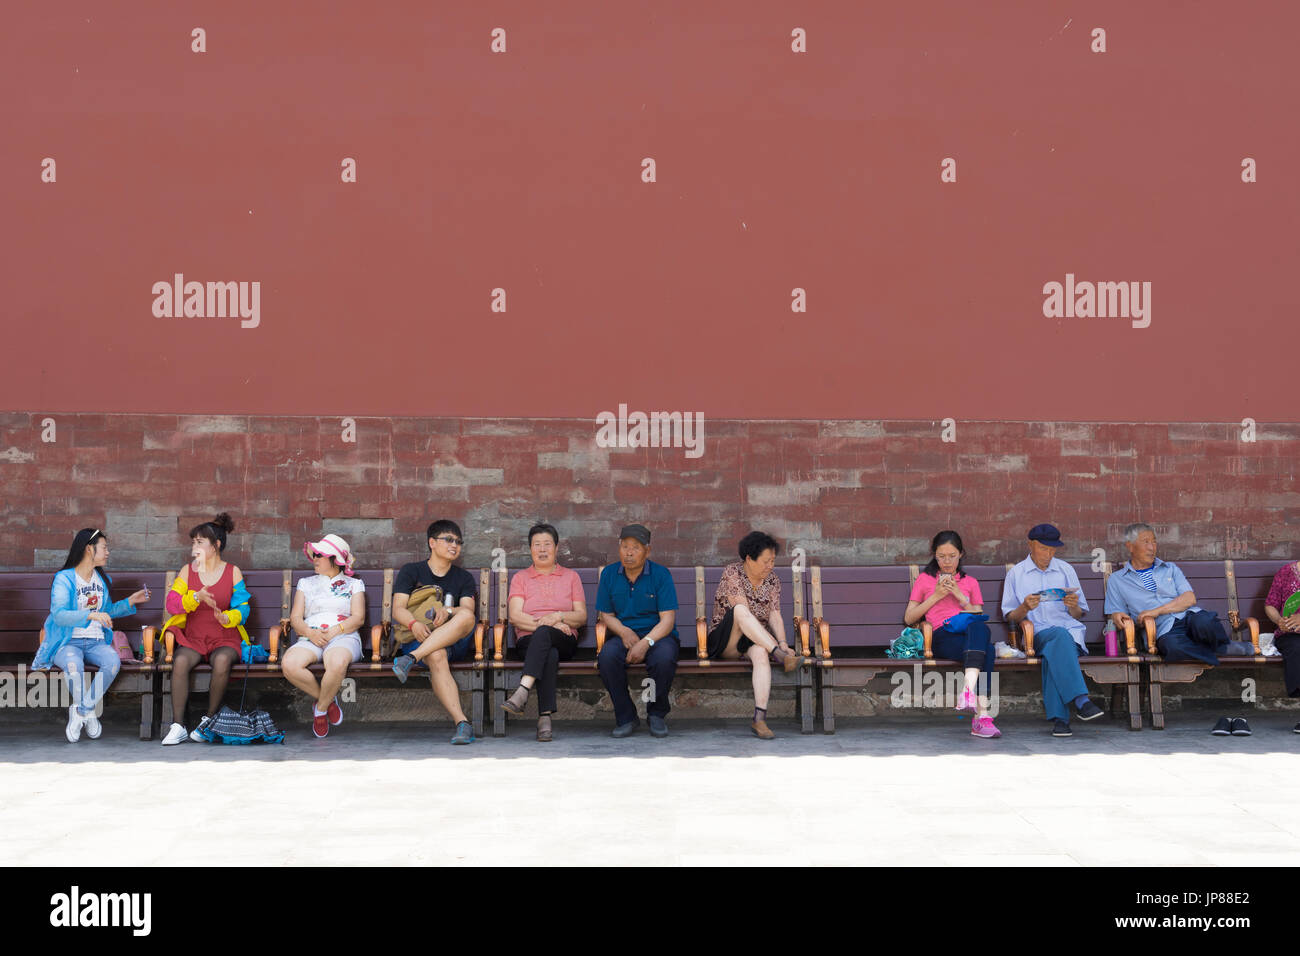 Chinese tourists of different ages sitting on bench at Forbidden City in Beijing - some resting, some talking, one on her mobile phone - Stock Image